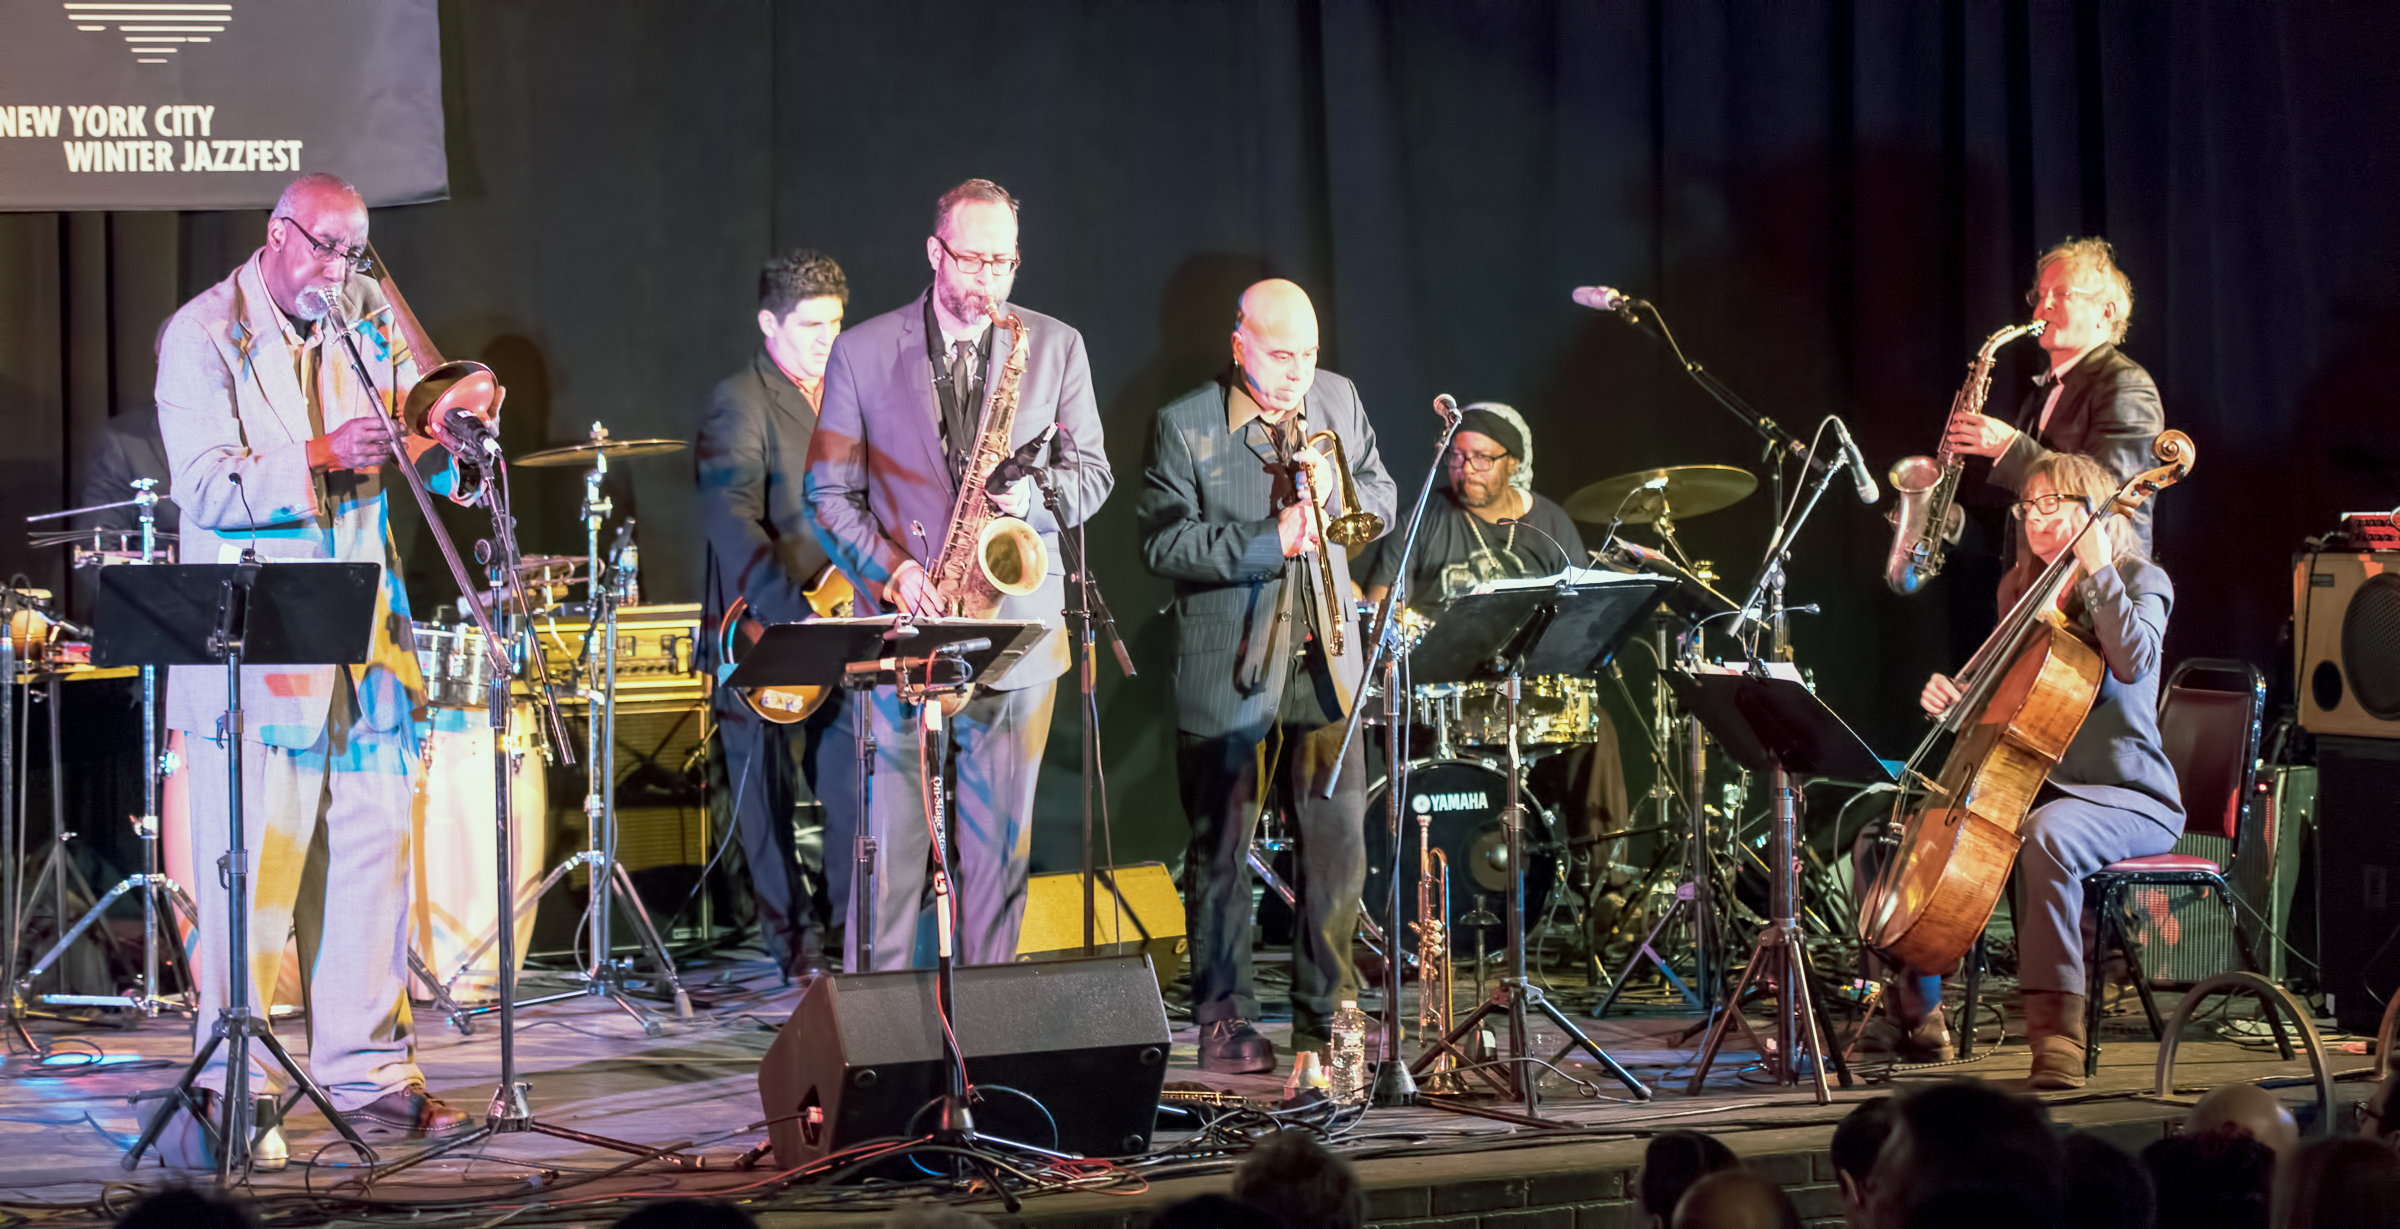 Curtis Fowlkes, Tony Scherr, Michael Blake, Steven Bernstein, g. Calvin Weston and Doug Wieselman with Strange and Beautiful: the Music of John Lurie and the Lounge Lizards at the Nyc Winter Jazzfest 2015